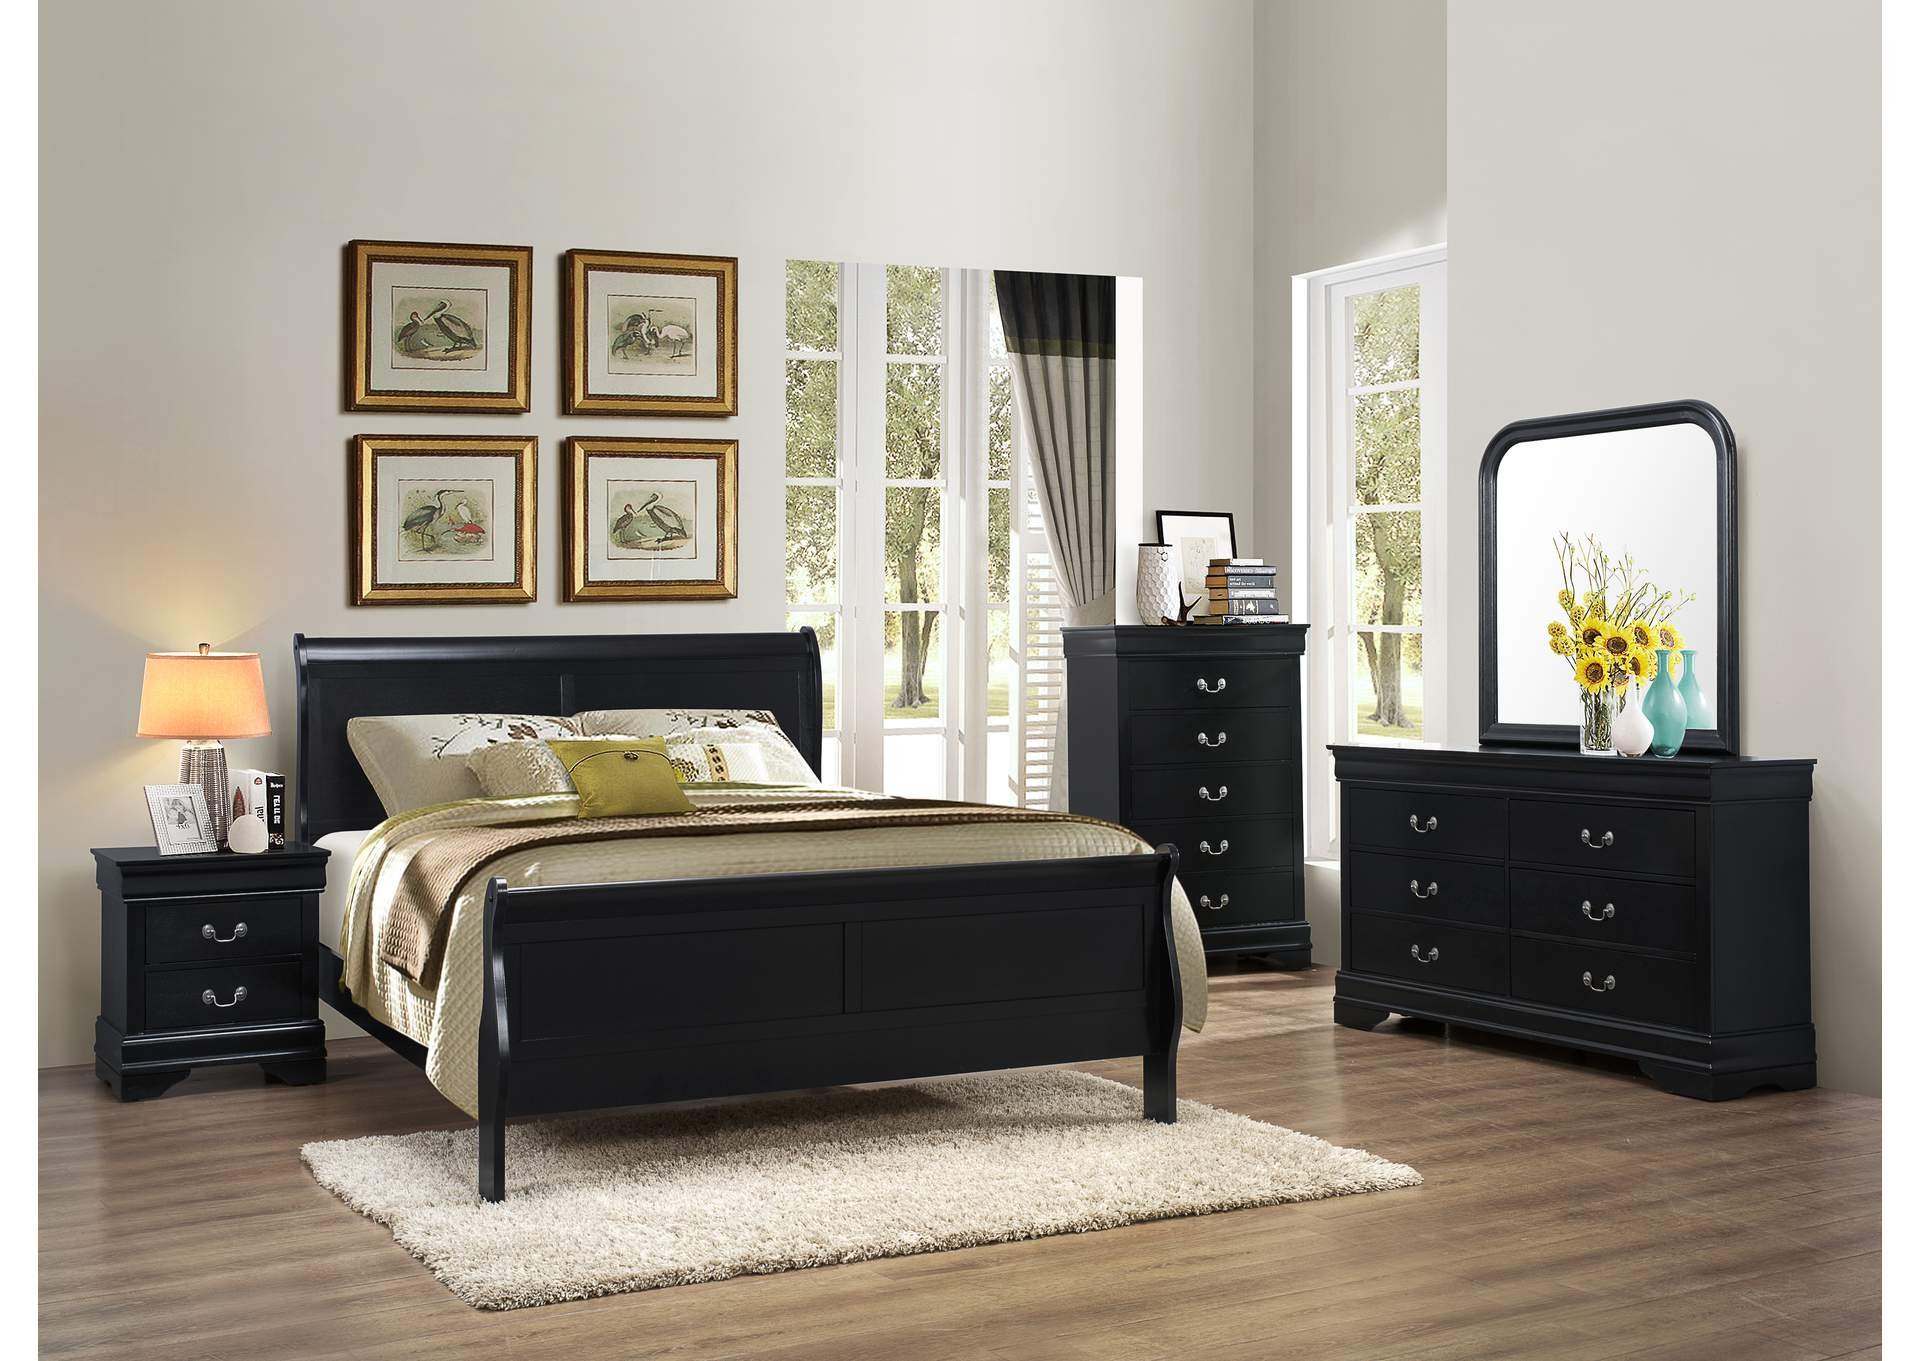 Black Queen Sleigh Bed,Global Trading